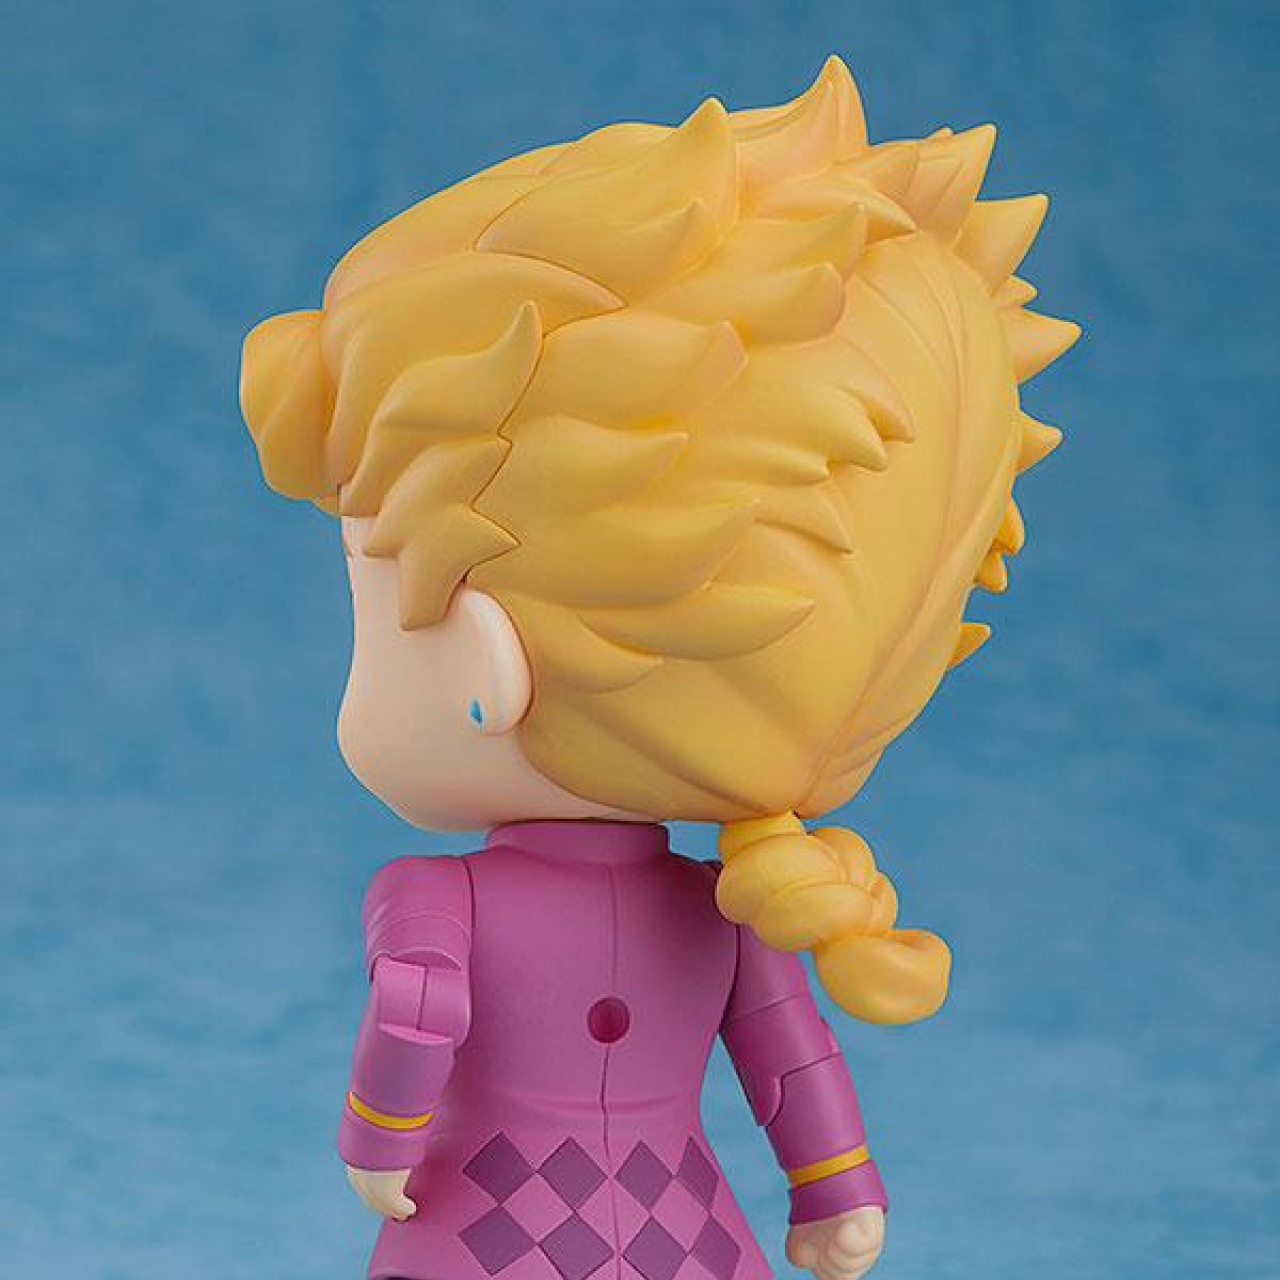 Jojo's Bizarre Adventure Golden Wind Nendoroid Action Figure Giorno Giovanna 10 cm